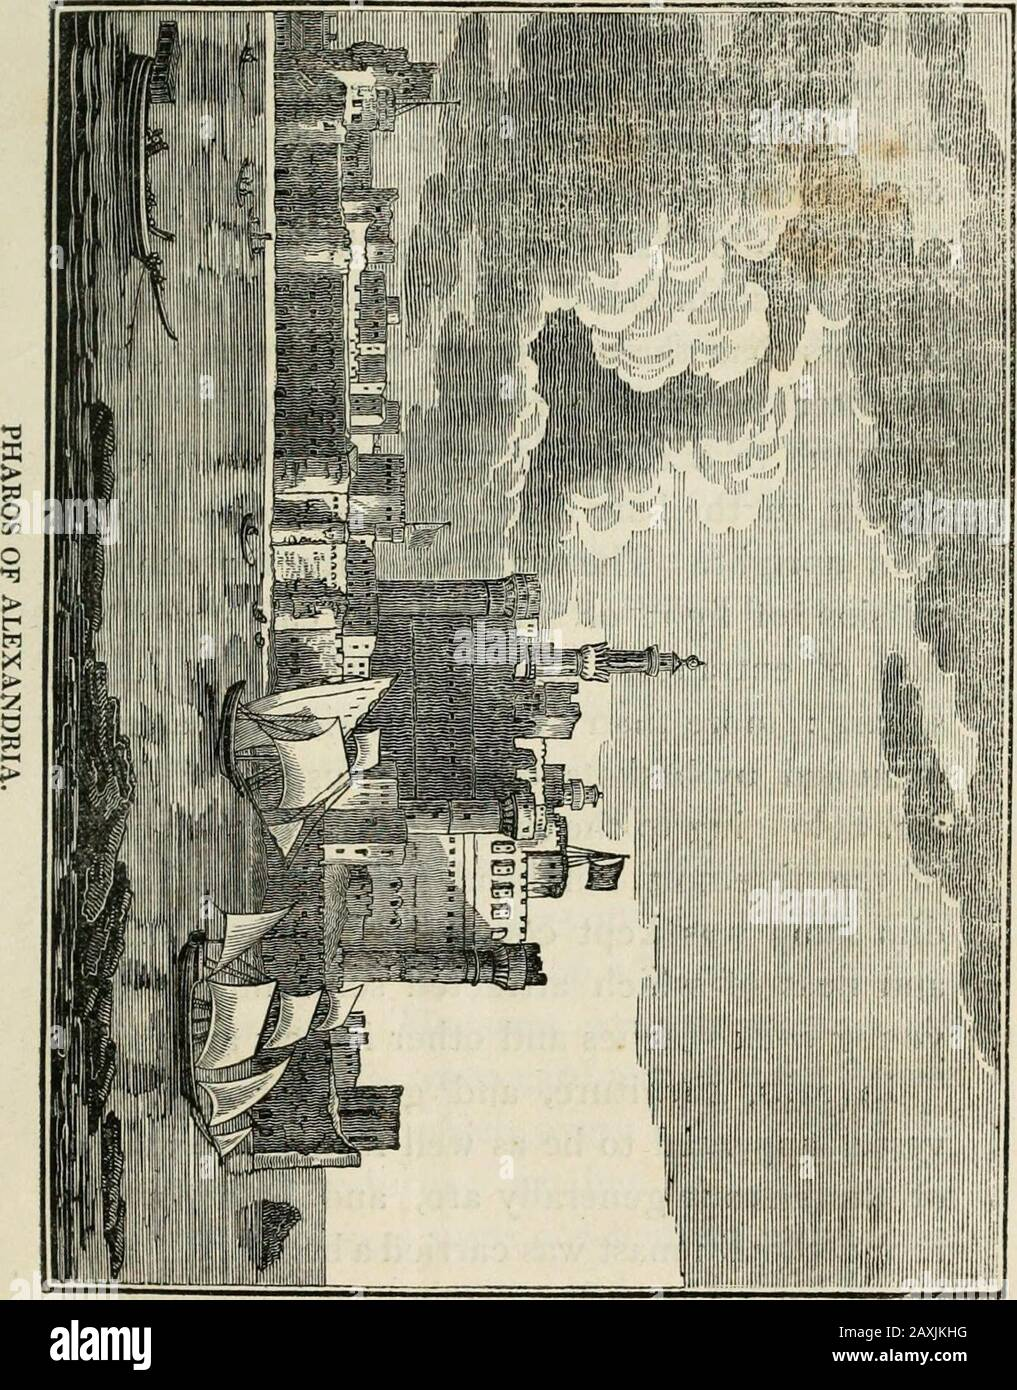 Travels in Palestine, through the countries of Bashan and Cilead, east of the River Jordan; including a visit to the cities of Geraza and Gamala, in the Decapolis . o take charge of the vessel,and conduct her navigation during the con-tinuance of the contrary wind ; and this had theeffect of making them agree unanimously tokeep under sail a little longer. The vessel in which I had embarked, was oneof those called a Shuktoor, and seemed peculiarto the navigation of the Syrian coast. Its lengthwas about thirty feet, and its extreme breadthfifteen, but being of shallow draught, itsburthen could n Stock Photo